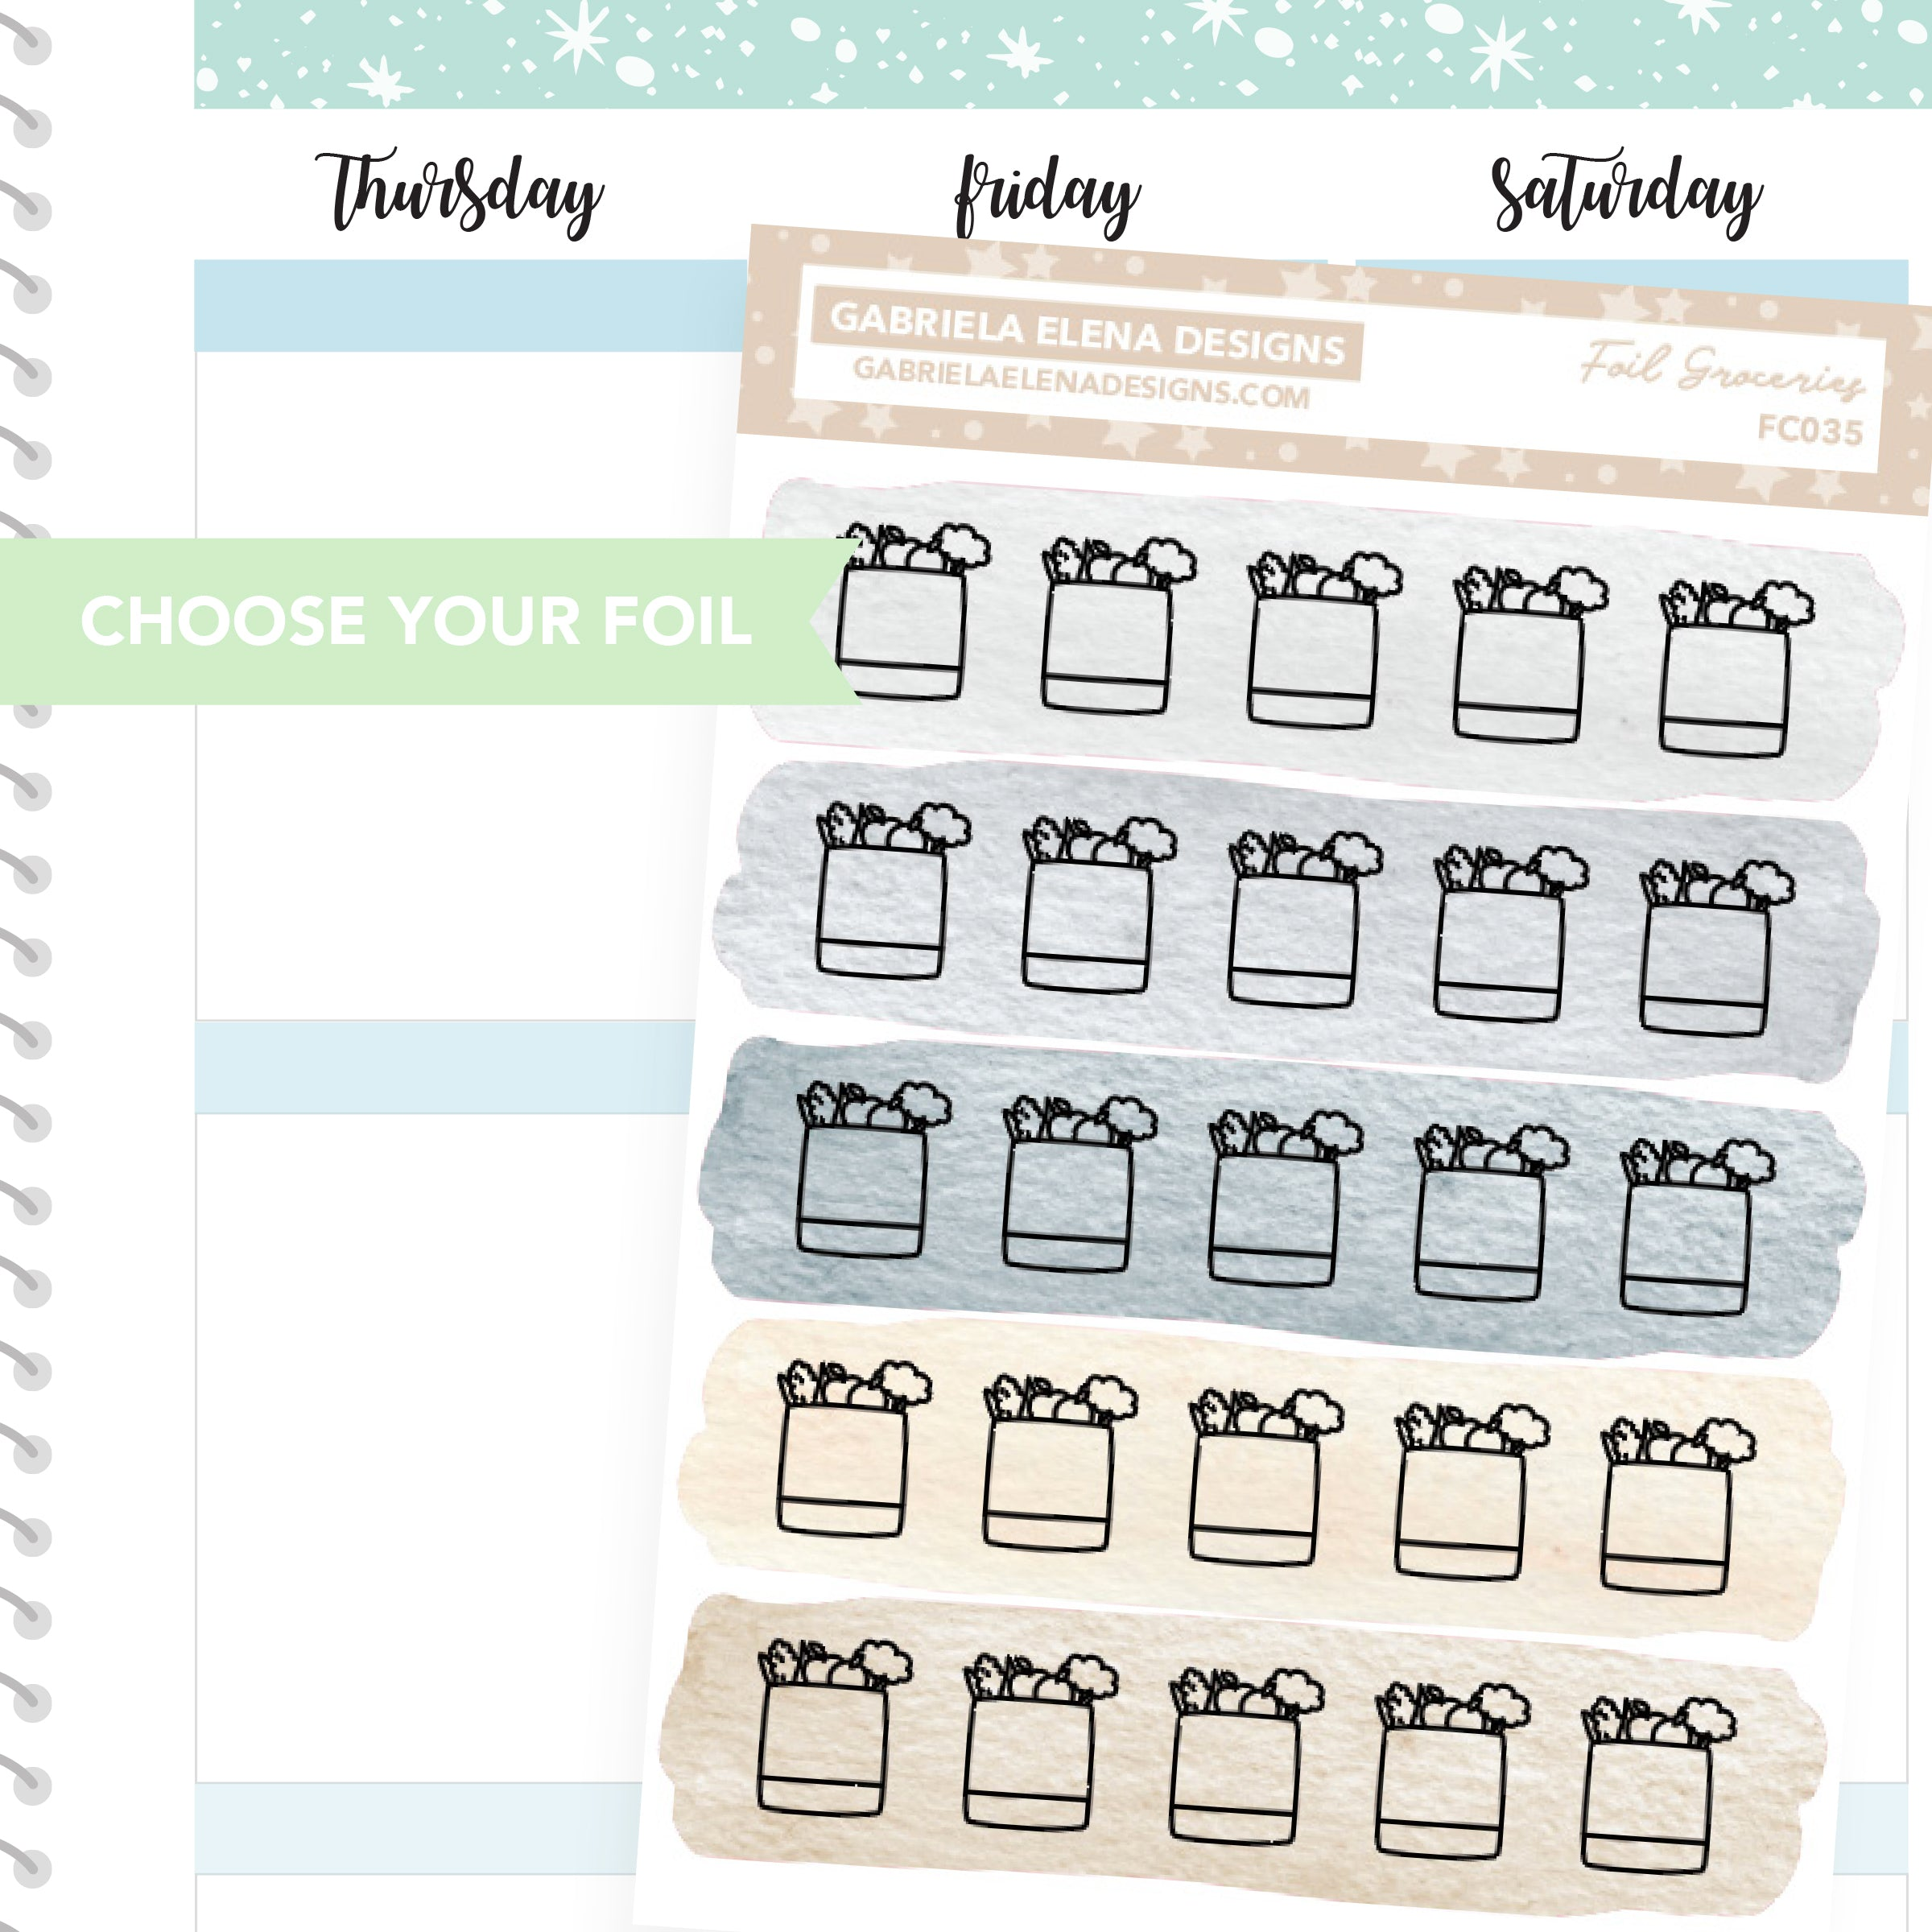 Groceries / FOIL Stickers / Choose Your Foil / Neutrals